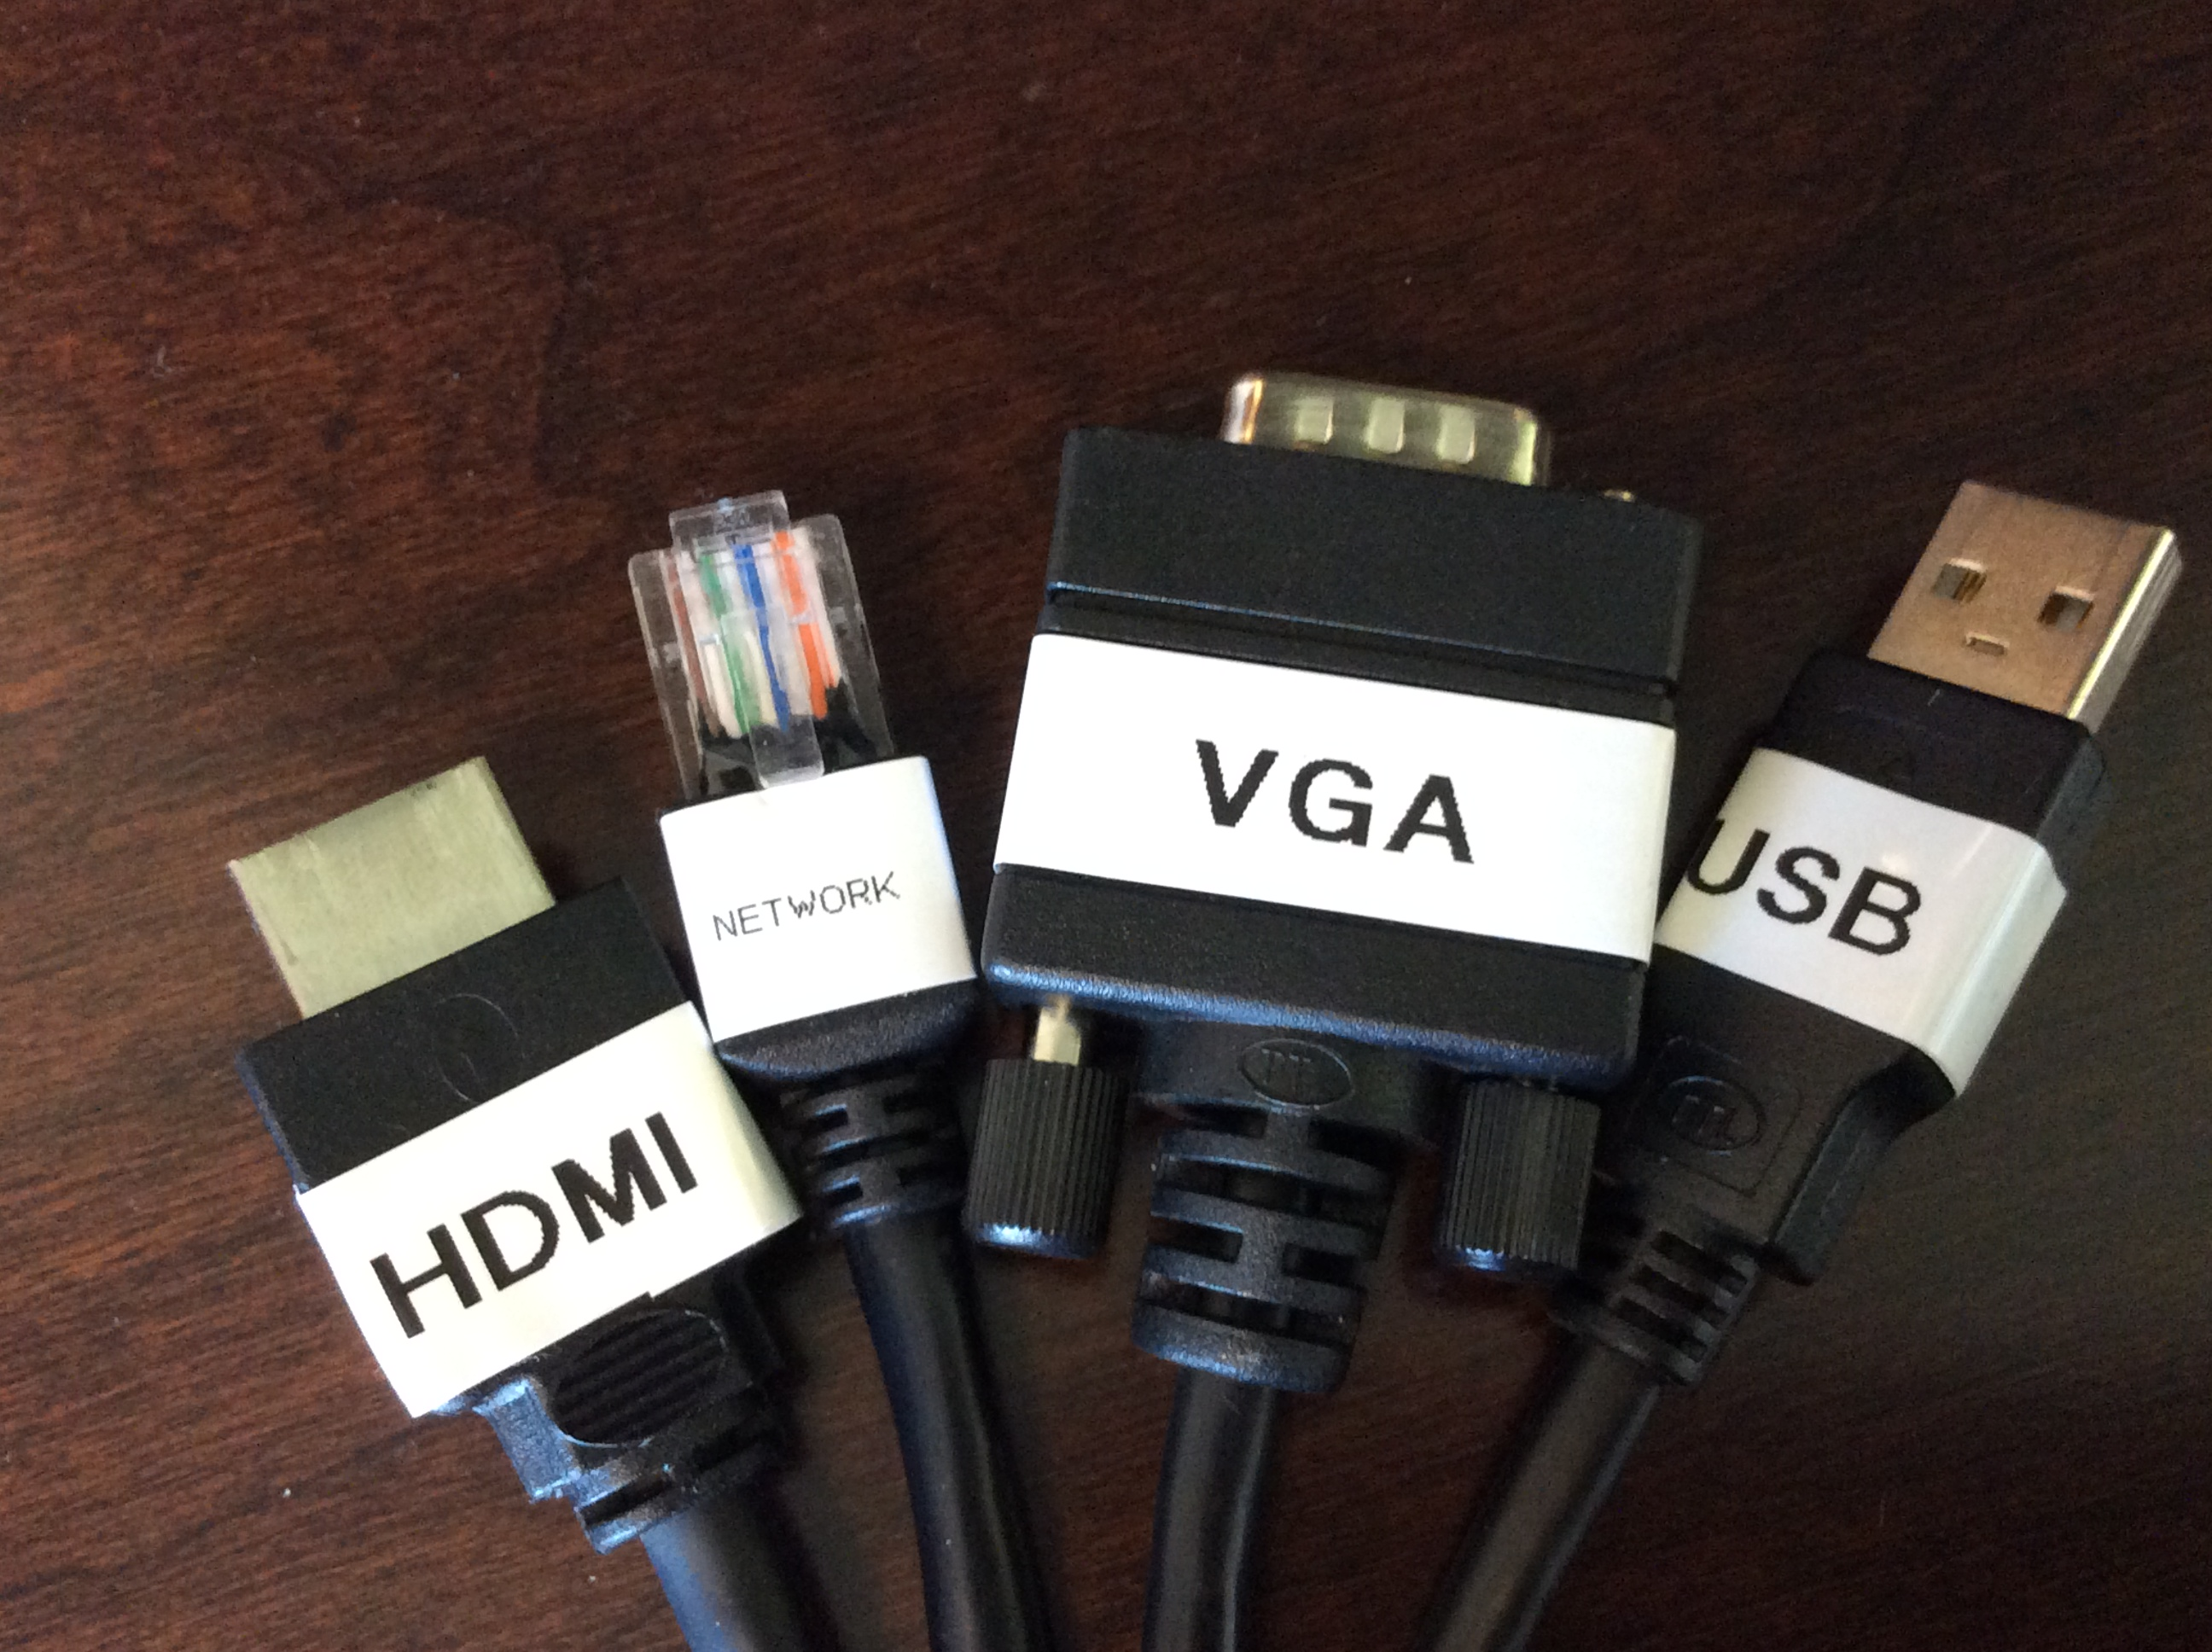 Photo of available cable options including HDMI, network, VGA, and USB